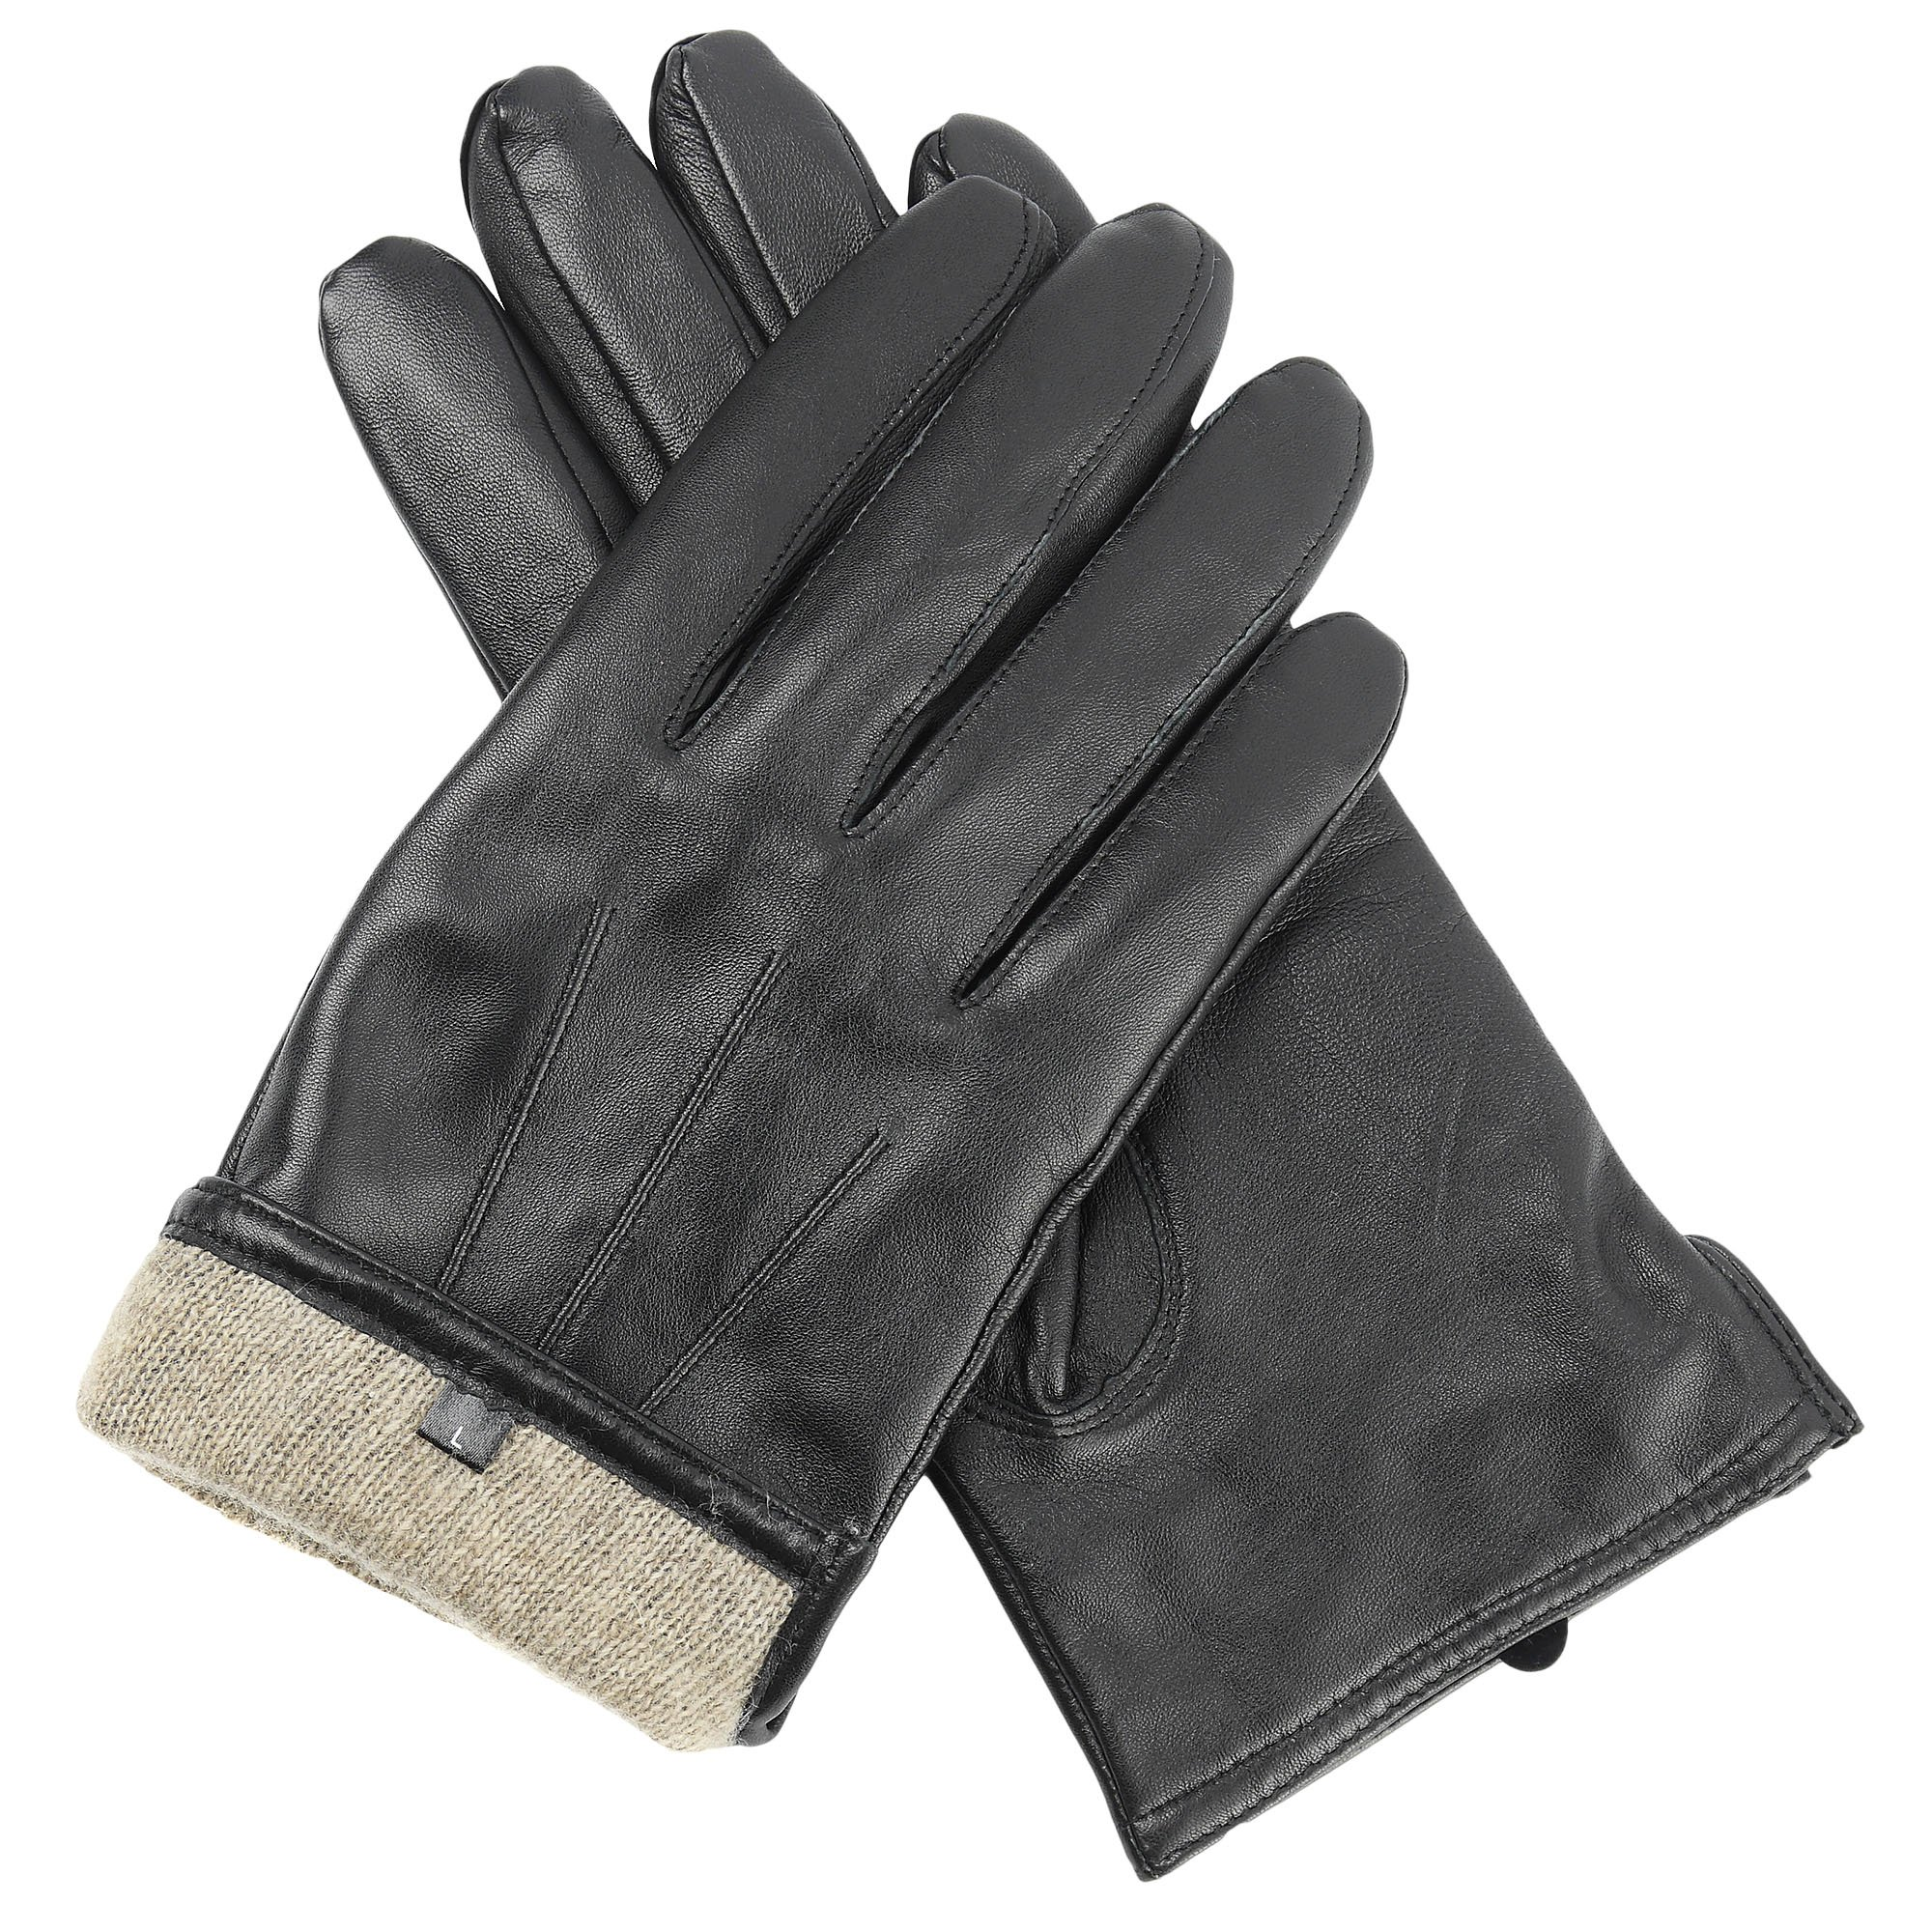 Candor and Class Men's Sheepskin Leather Gloves with Cashmere Lining (Black, Large)